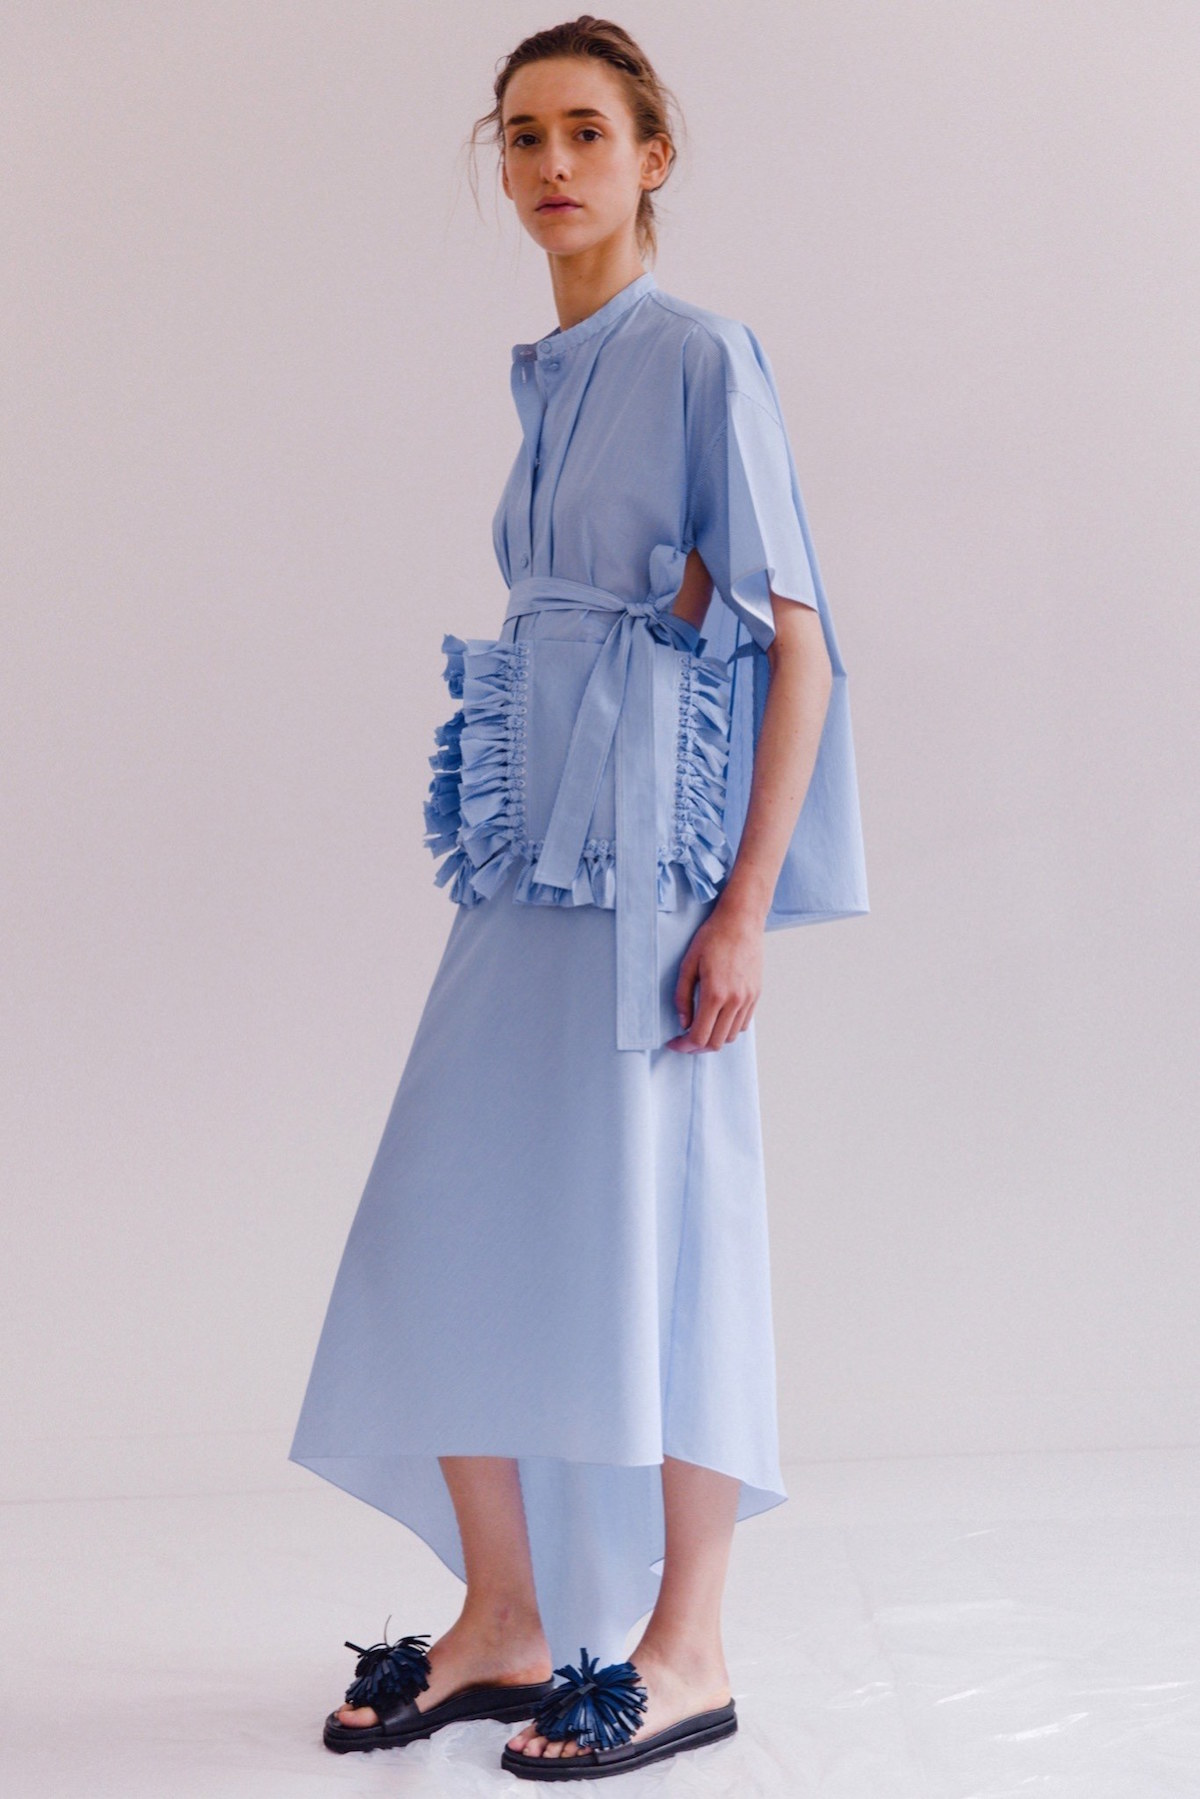 @pfairytale Ports 1961 Resort 2016 Collection